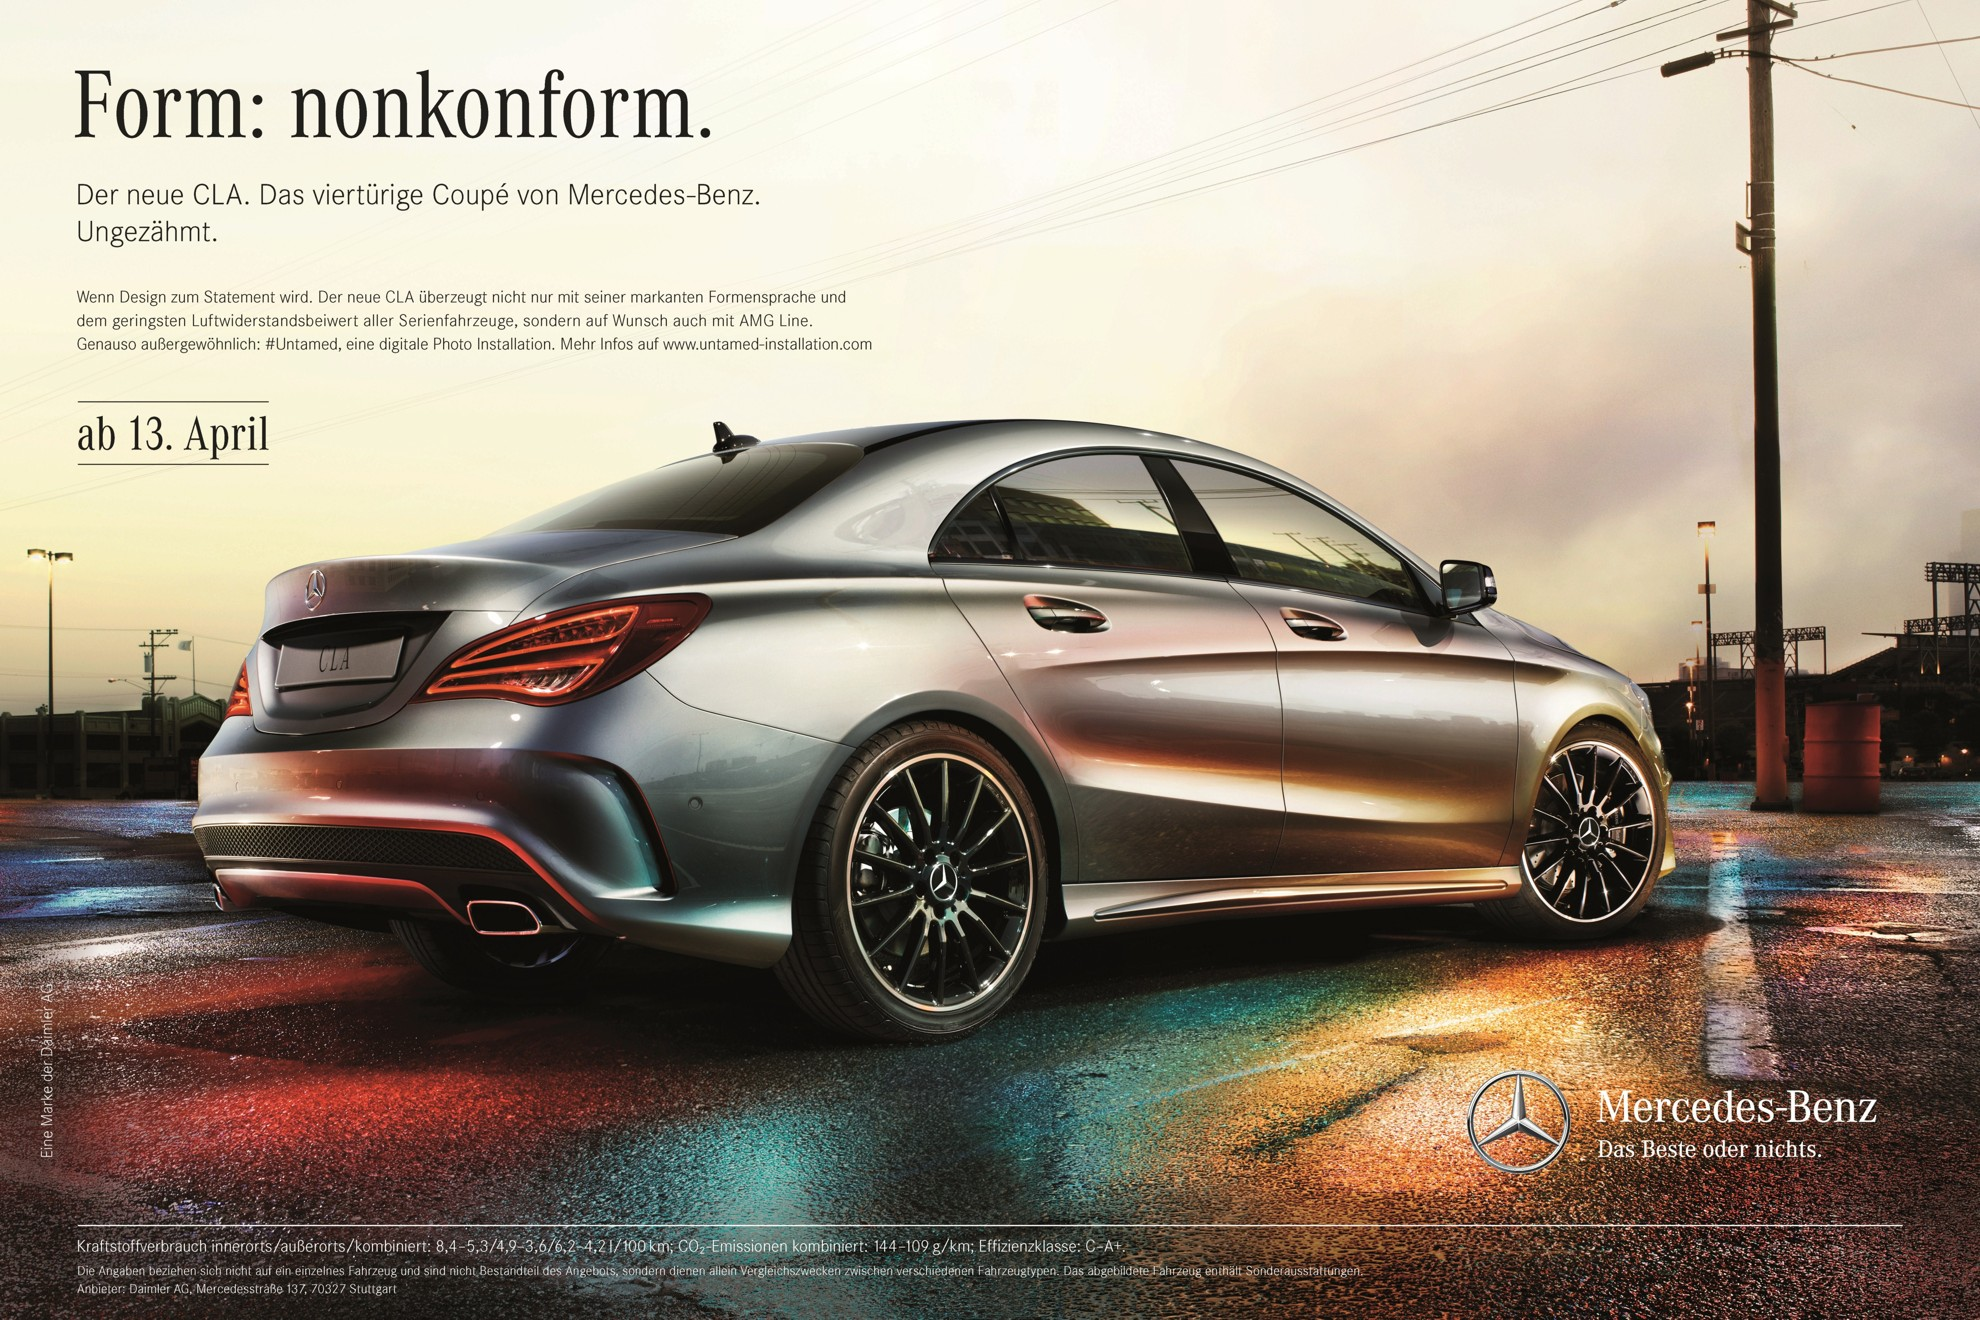 The new Mercedes Benz CLA: Mercedes-Benz launches extensive promotional campaign around the CLA